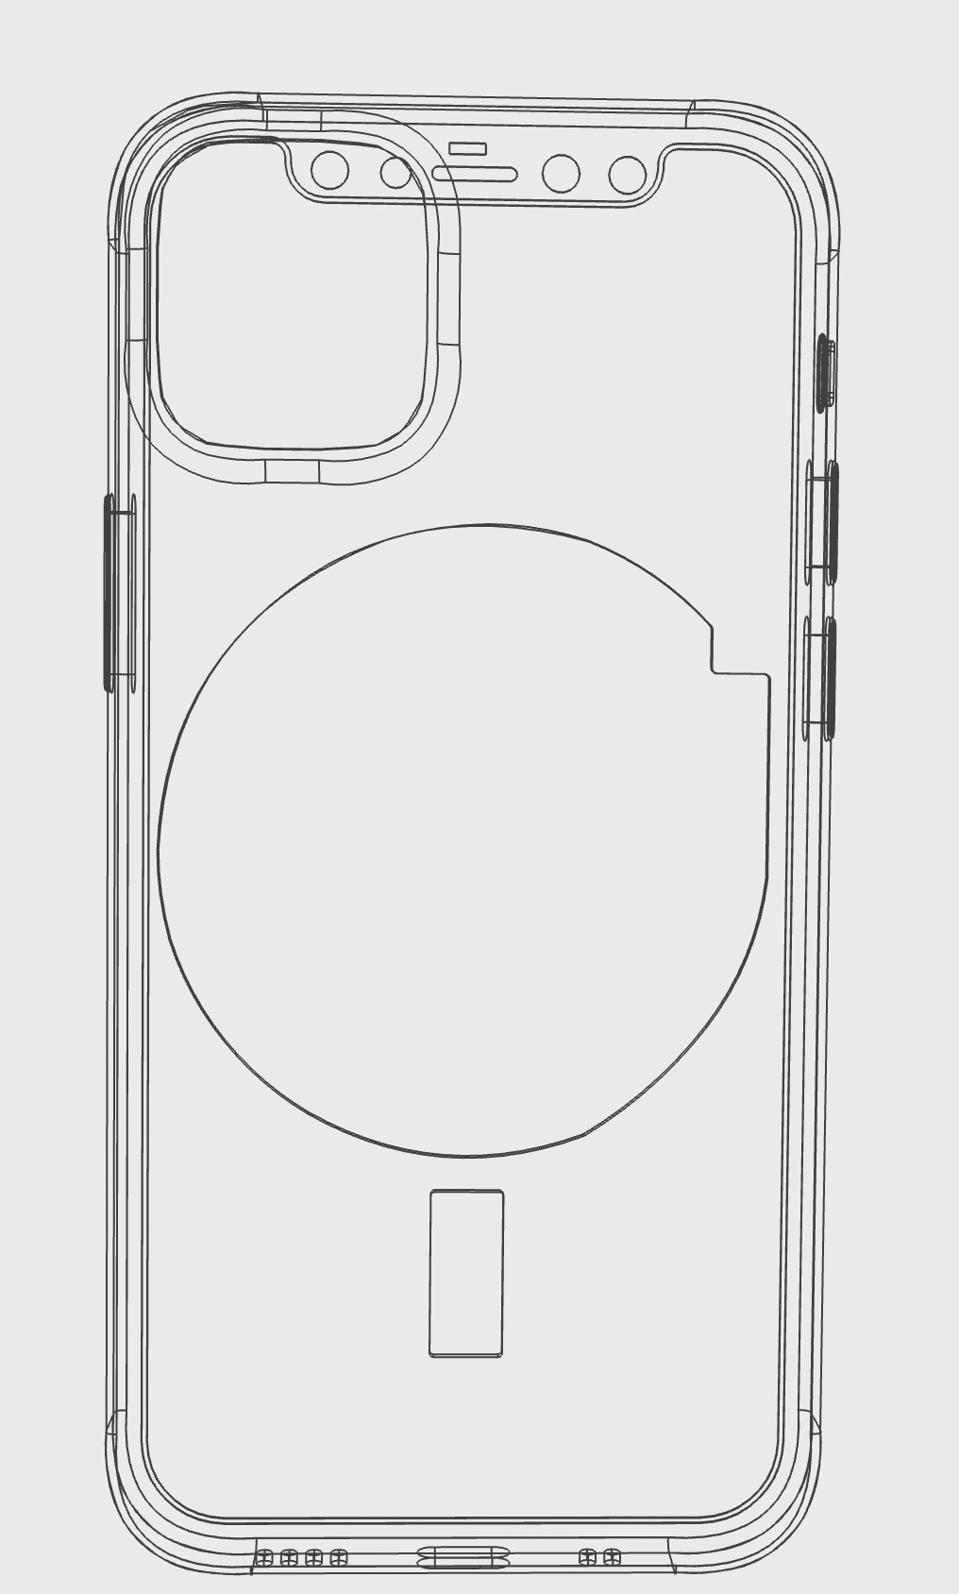 Apple, iPhone, new iPhone, iPhone 12, iPhone 12 Pro, iPhone 12 Pro Max, iPhone 12 release, iPhone 12 charging